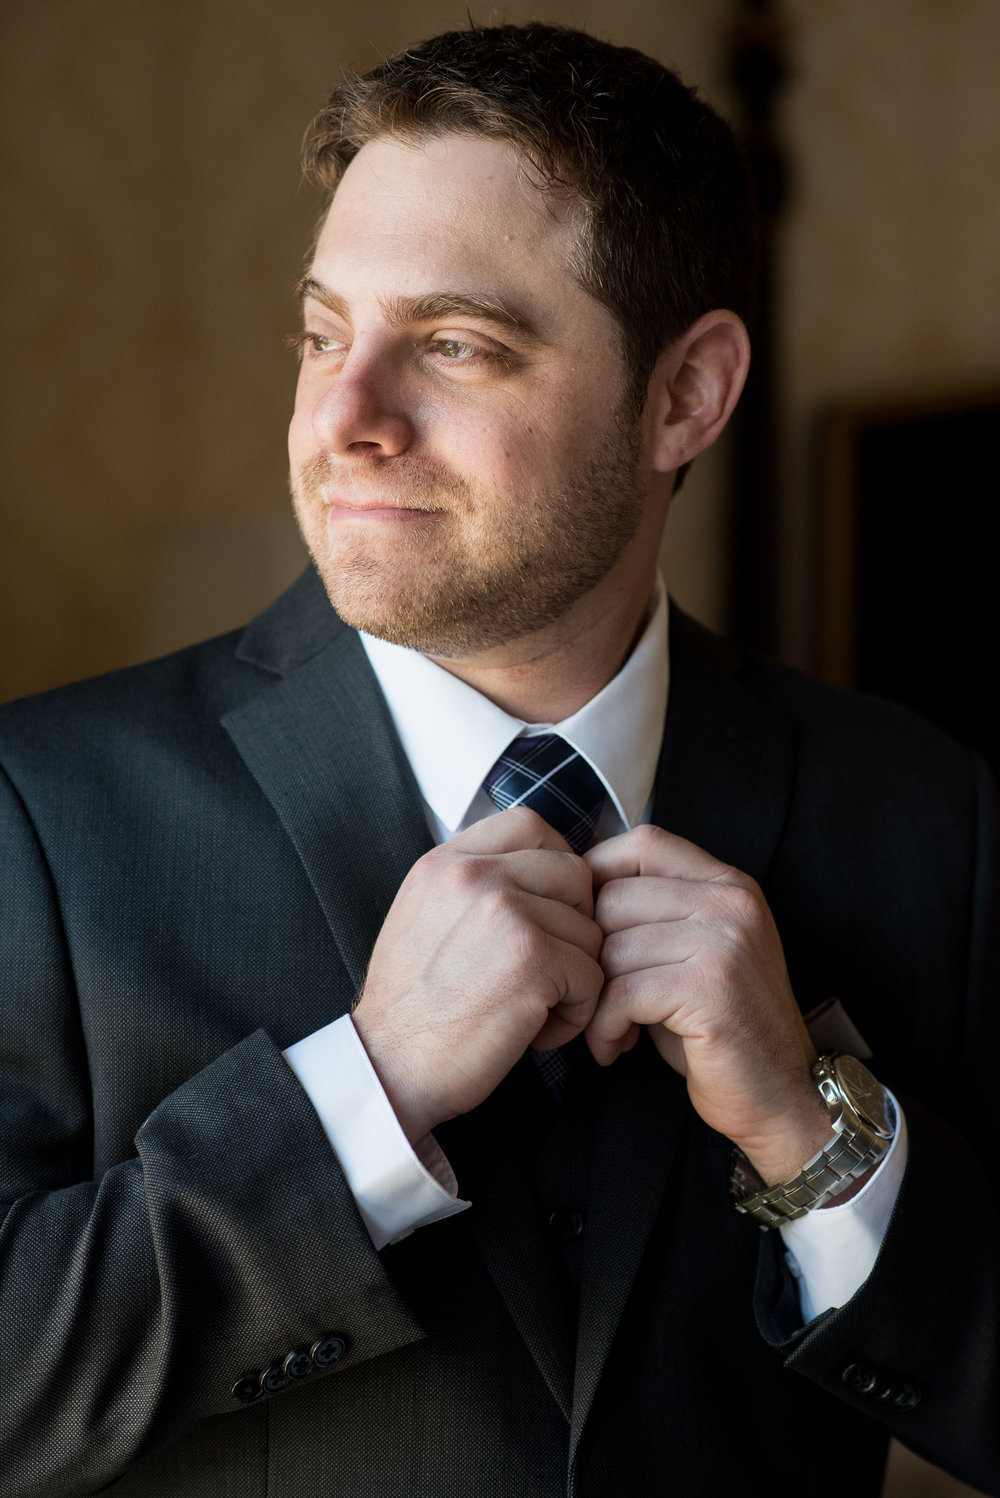 Groom getting ready at The Fairfax at Embassy Row DC - wedding photos